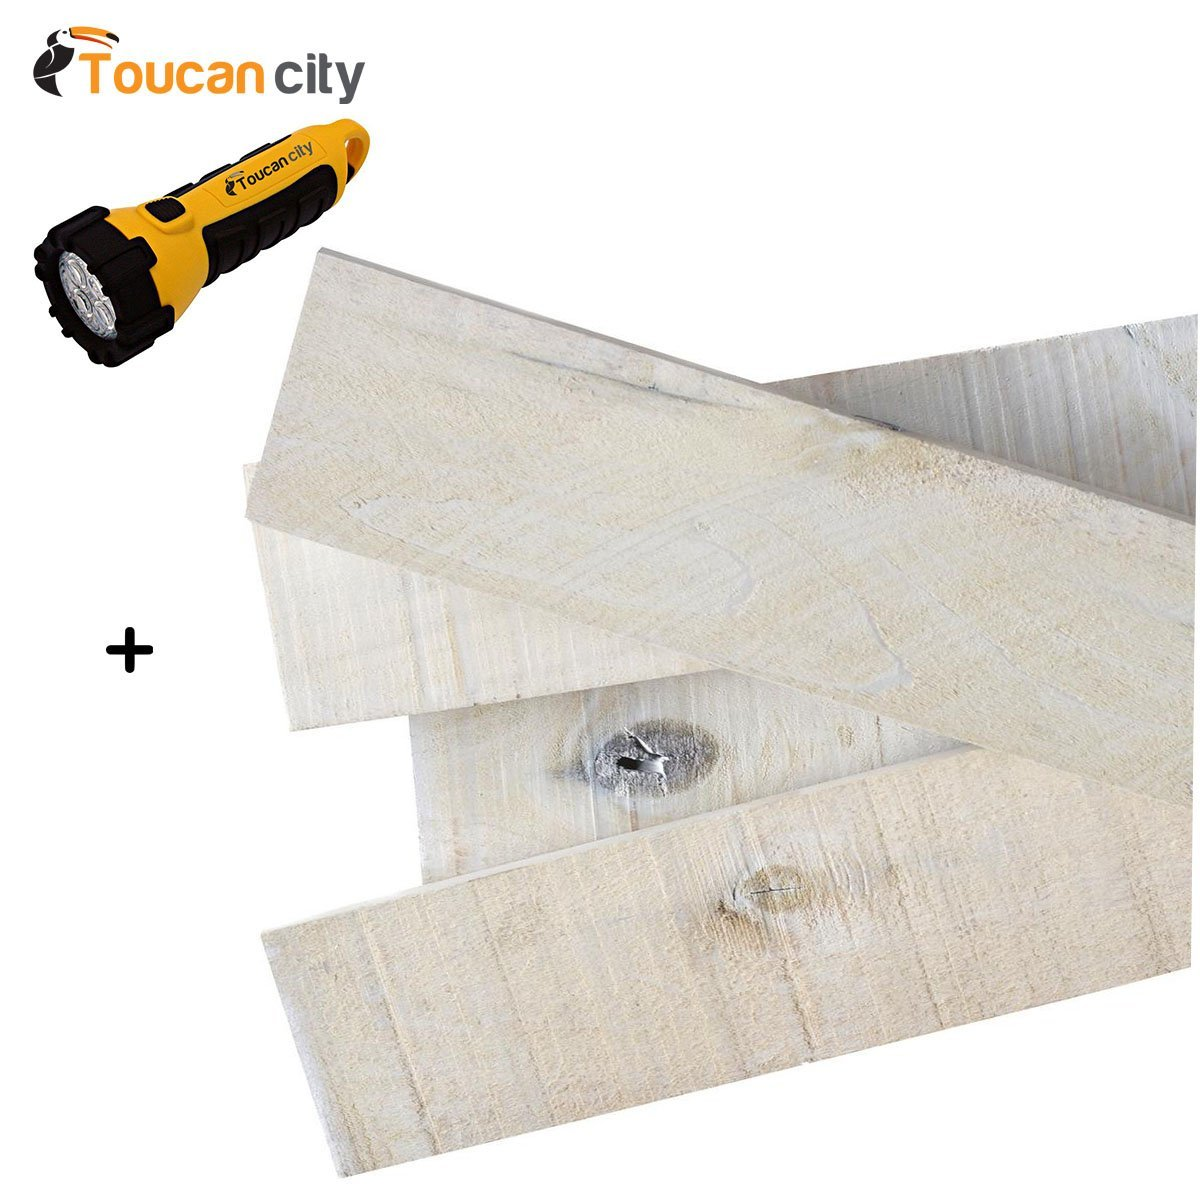 Toucan City LED Flashlight and 1/2 in. x 4 in. x 4 ft. White Wash Weathered Hardwood Board (8-Piece) 27839